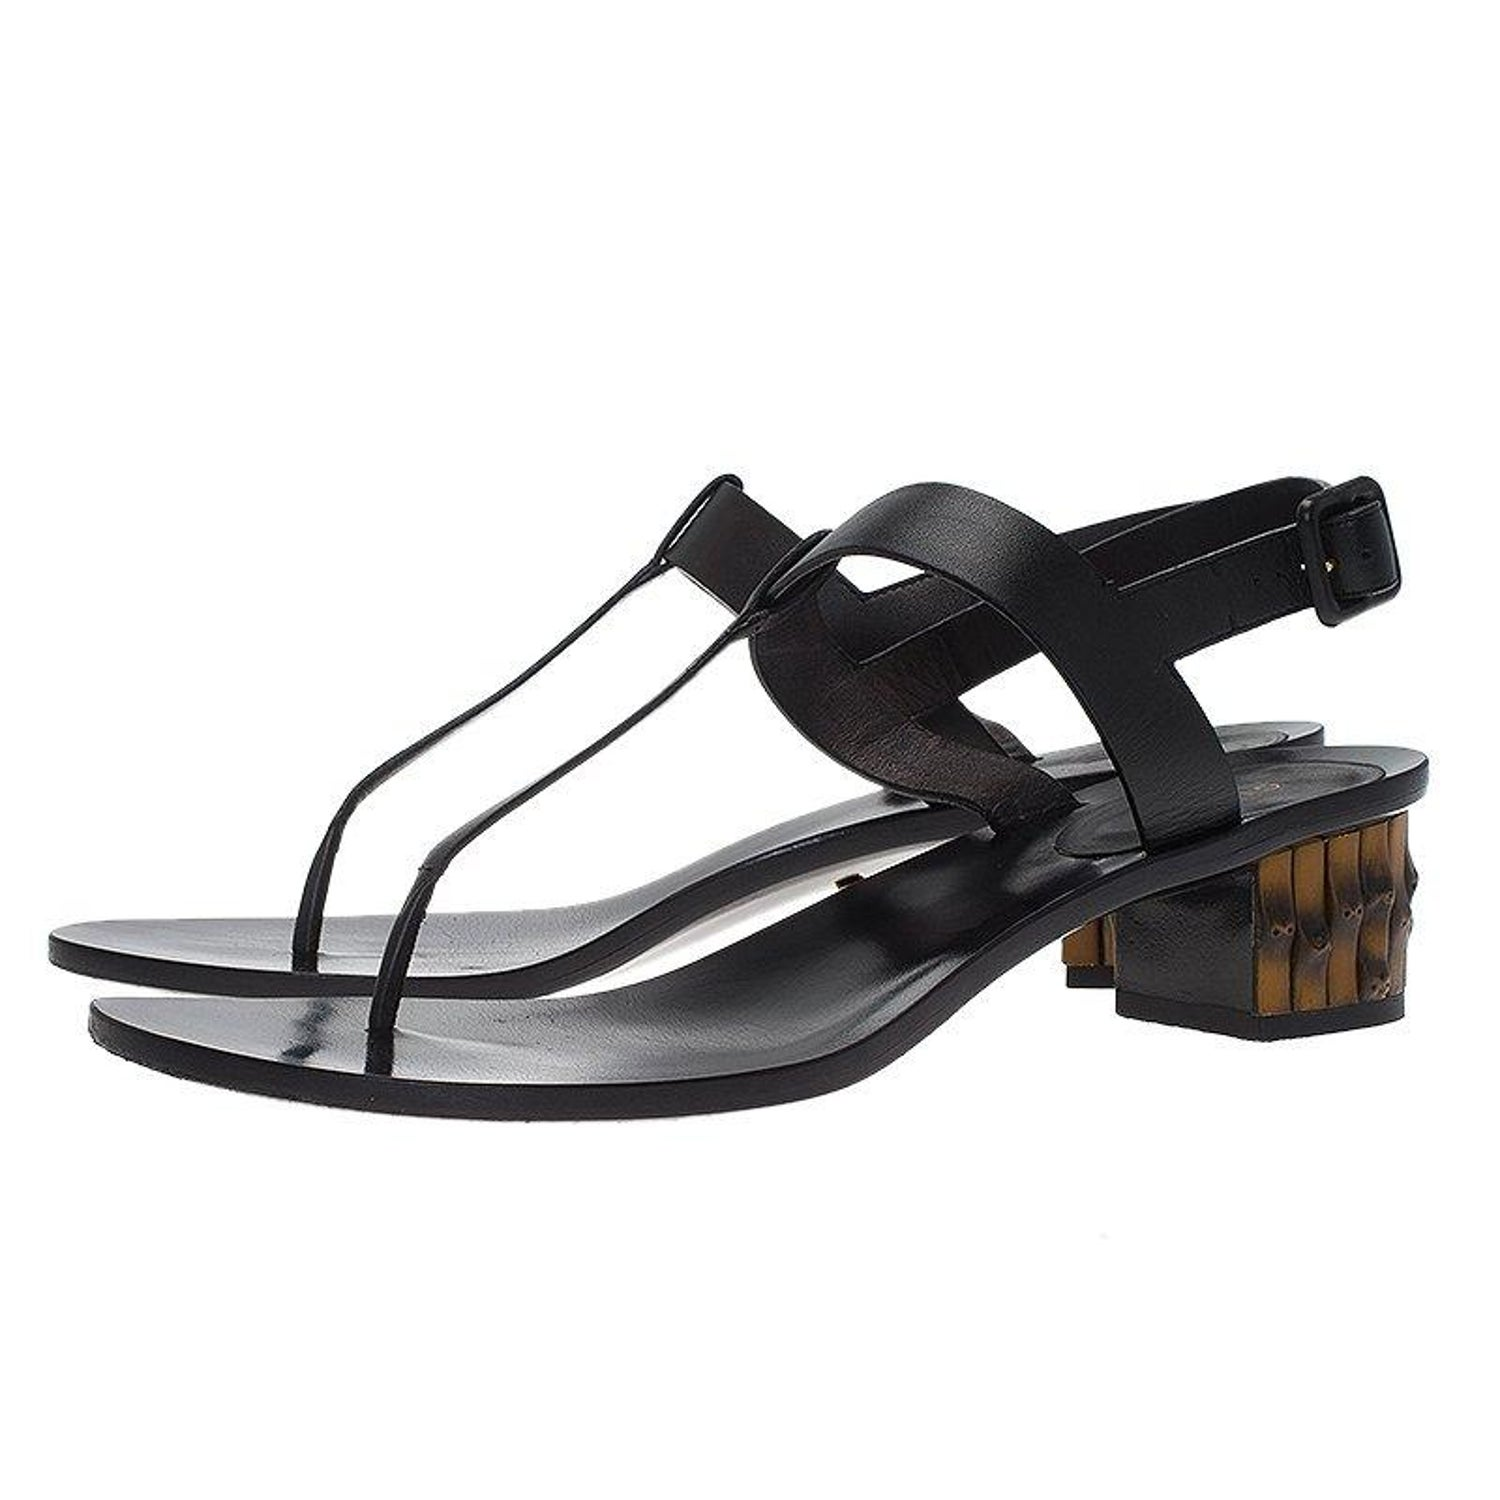 0d310db038cf3 Gucci Black Leather Dahlia Bamboo Heel Thong Sandals Size 40 For Sale at  1stdibs